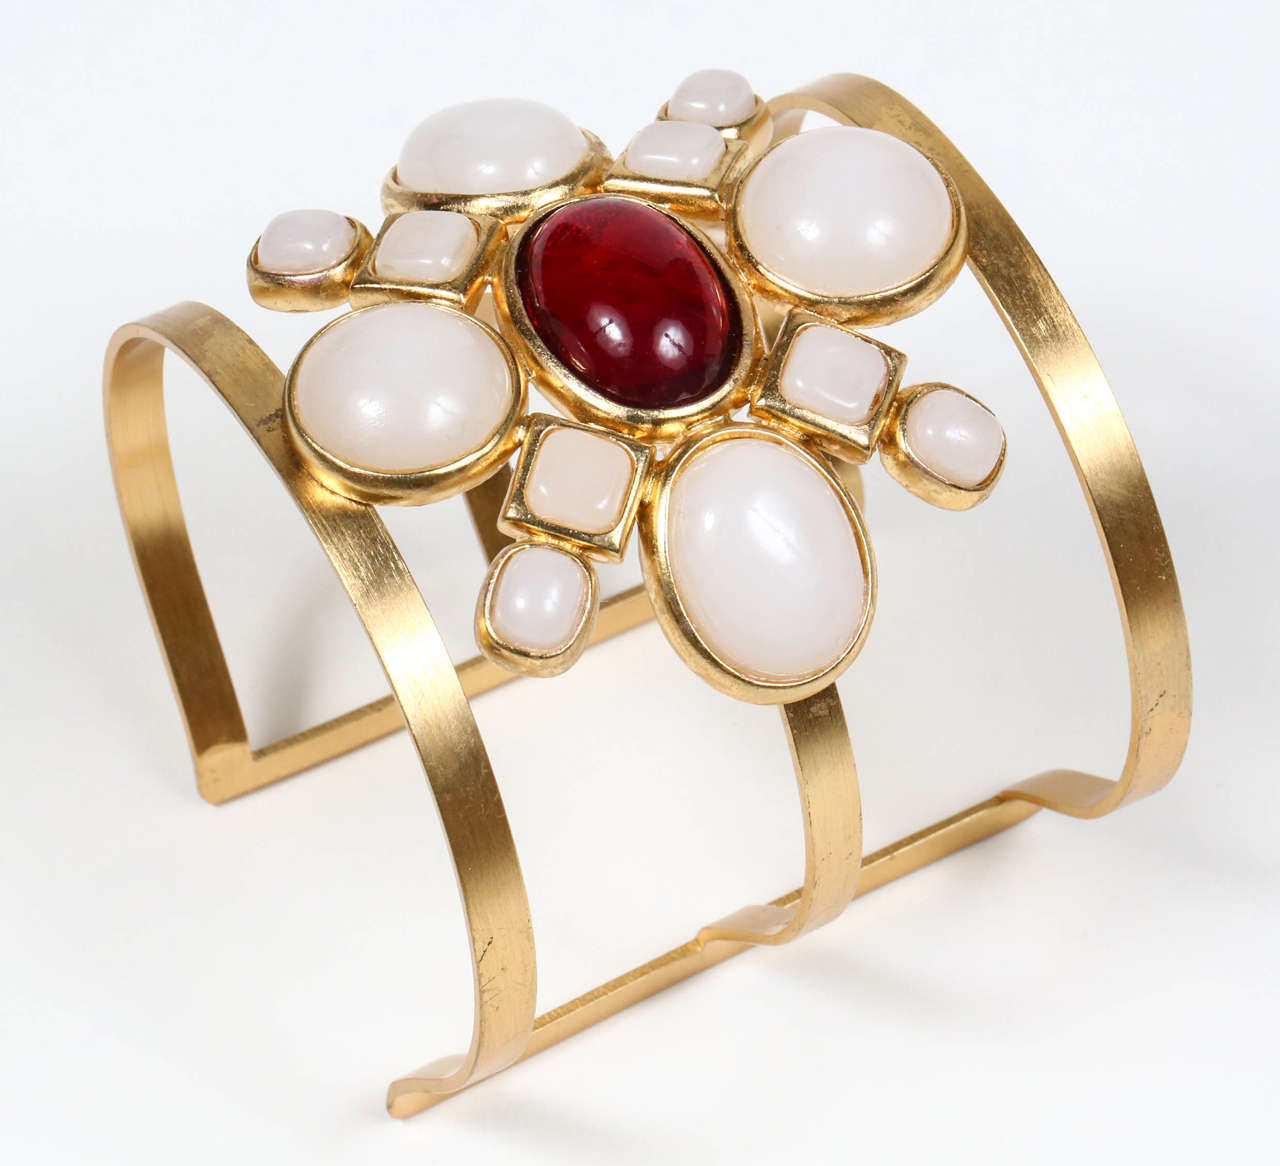 Chanel Poured Glass Arm Cuff 2